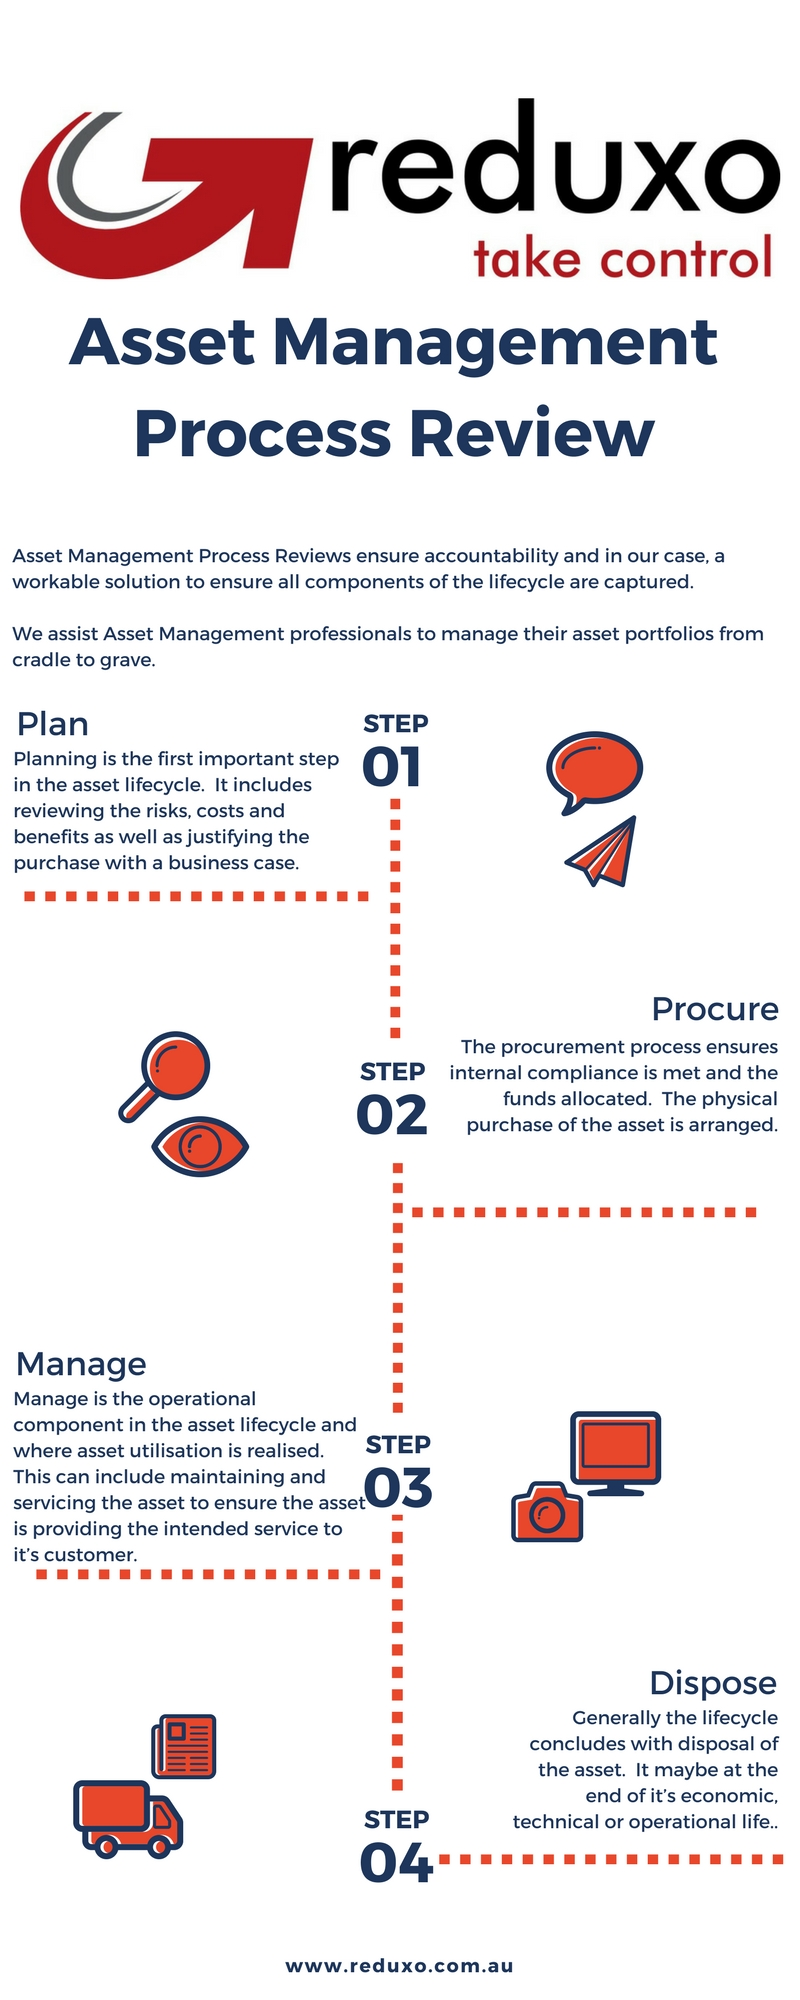 Reduxo Asset Management Process.jpg